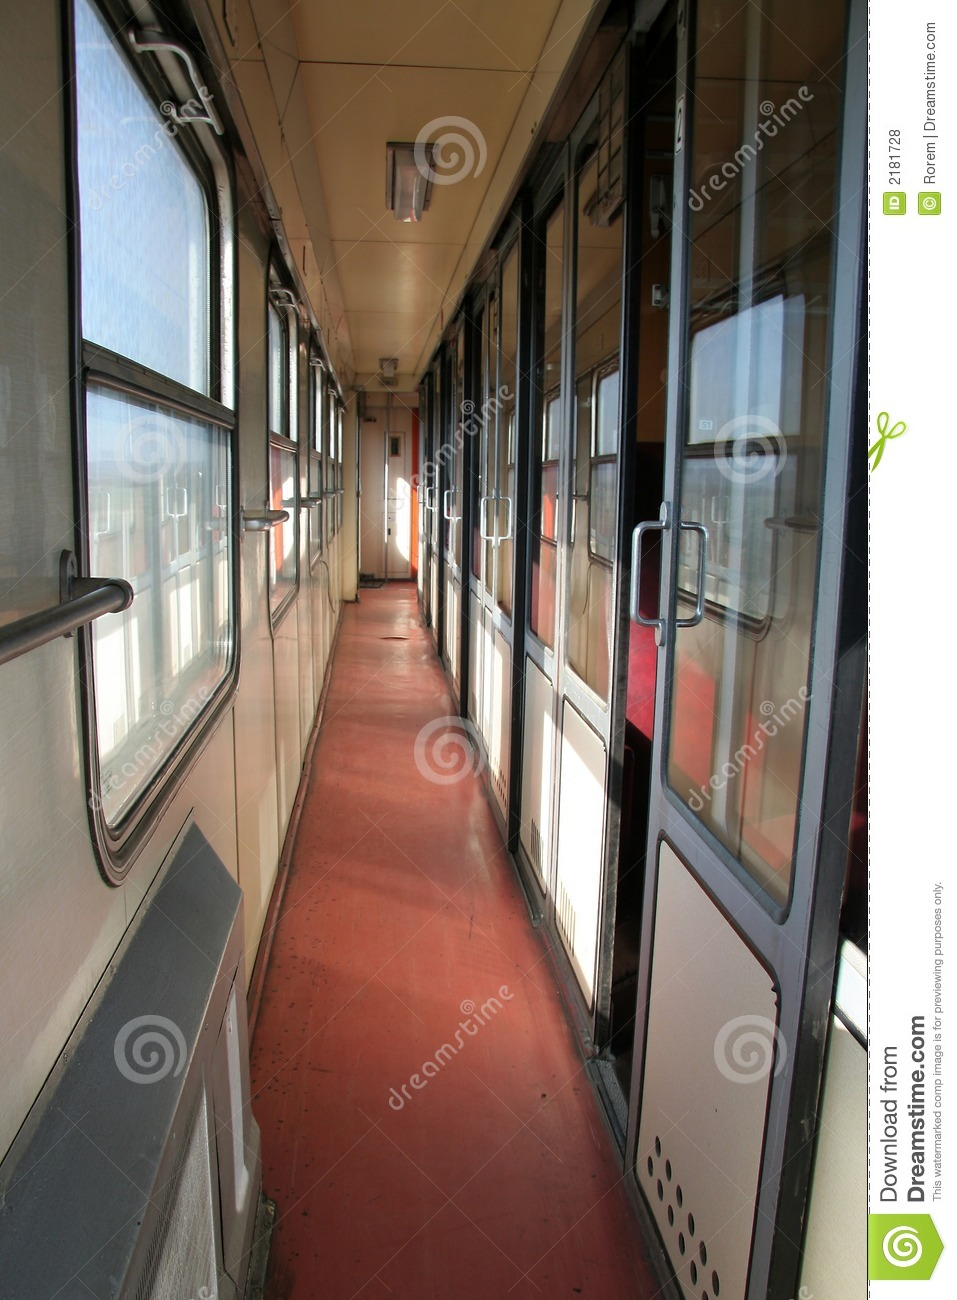 Old Fashioned Train Carriages